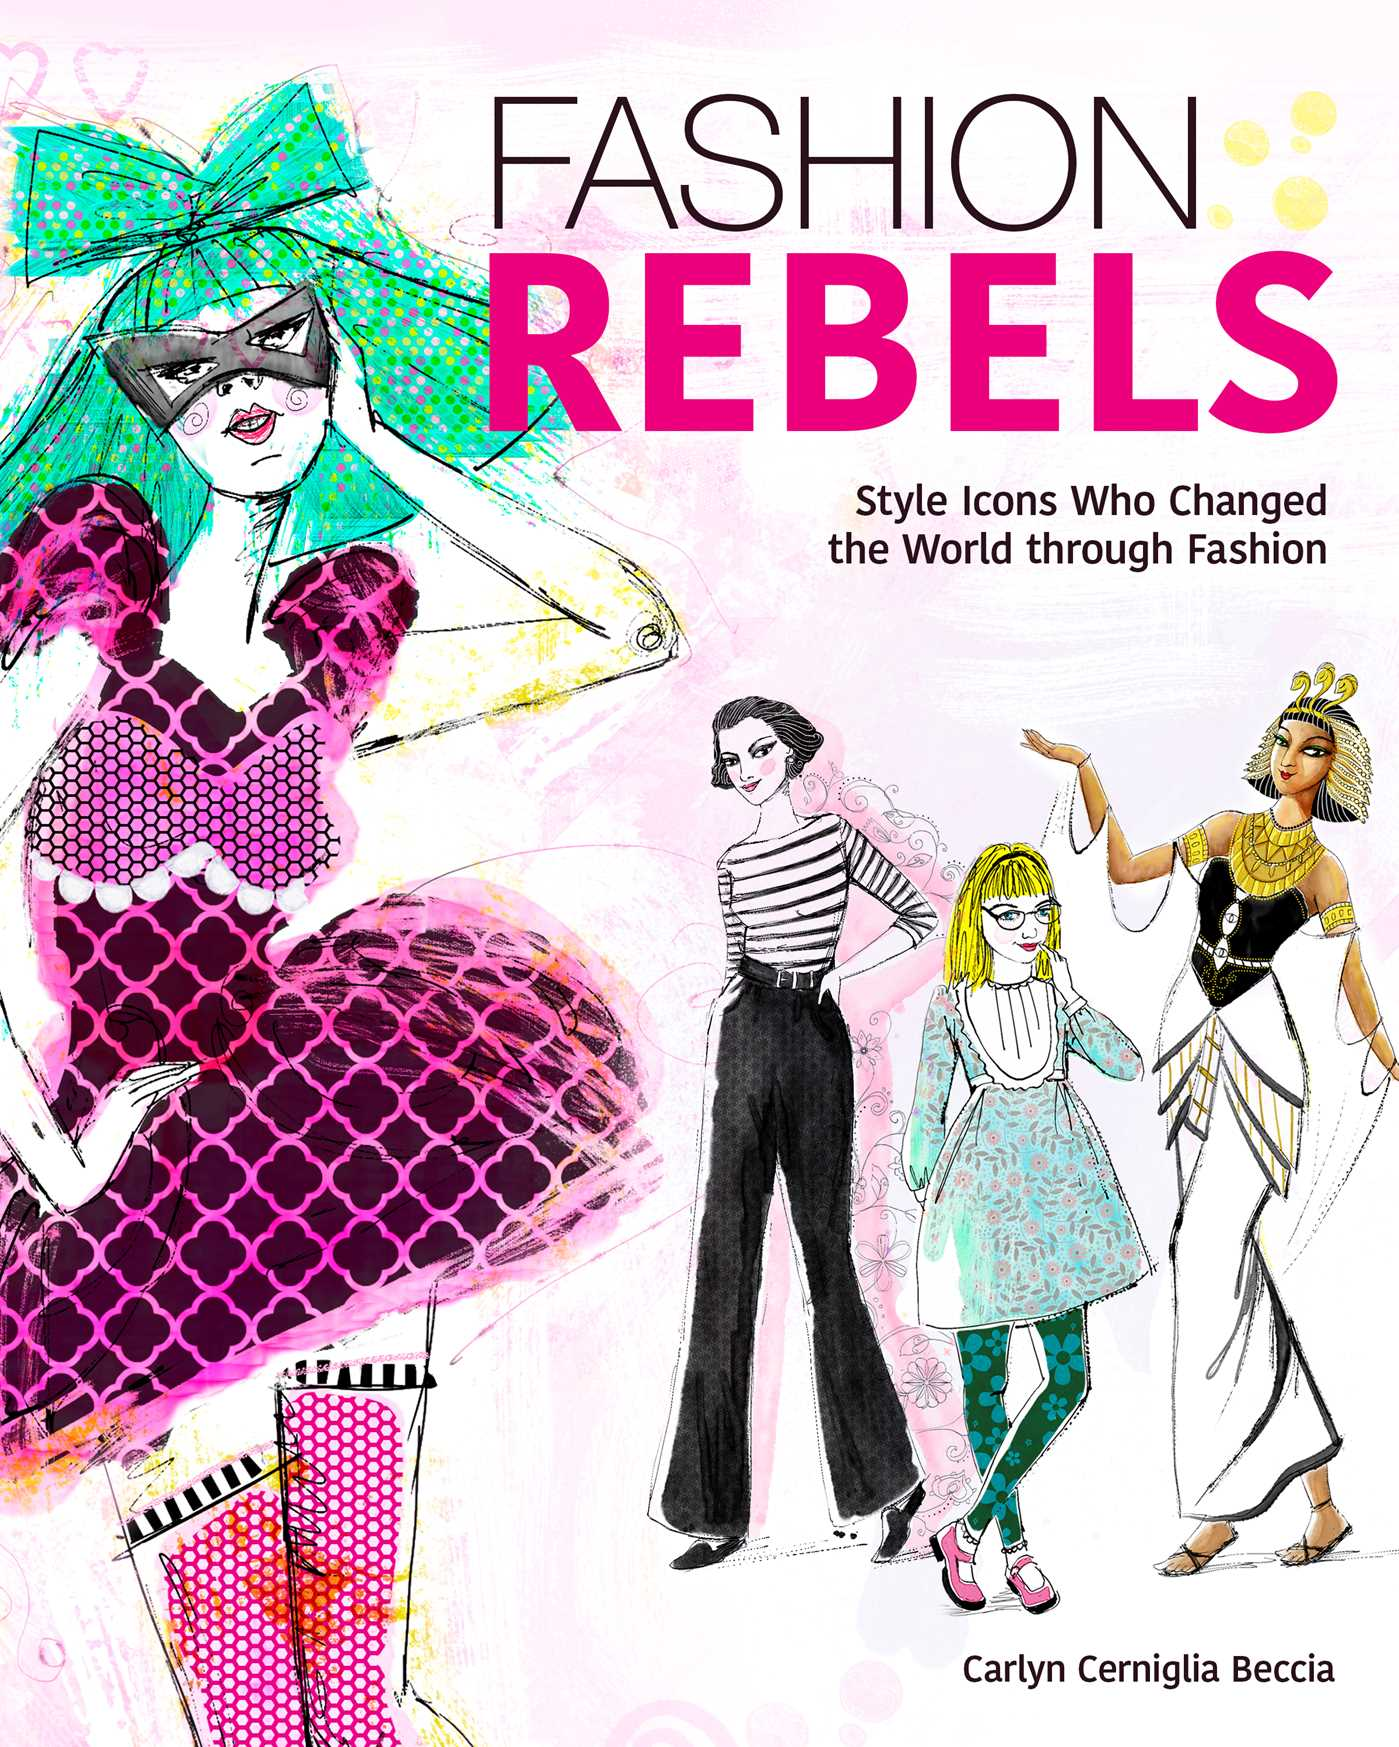 Book Cover Of Fashion ~ Fashion rebels book by carlyn cerniglia beccia official